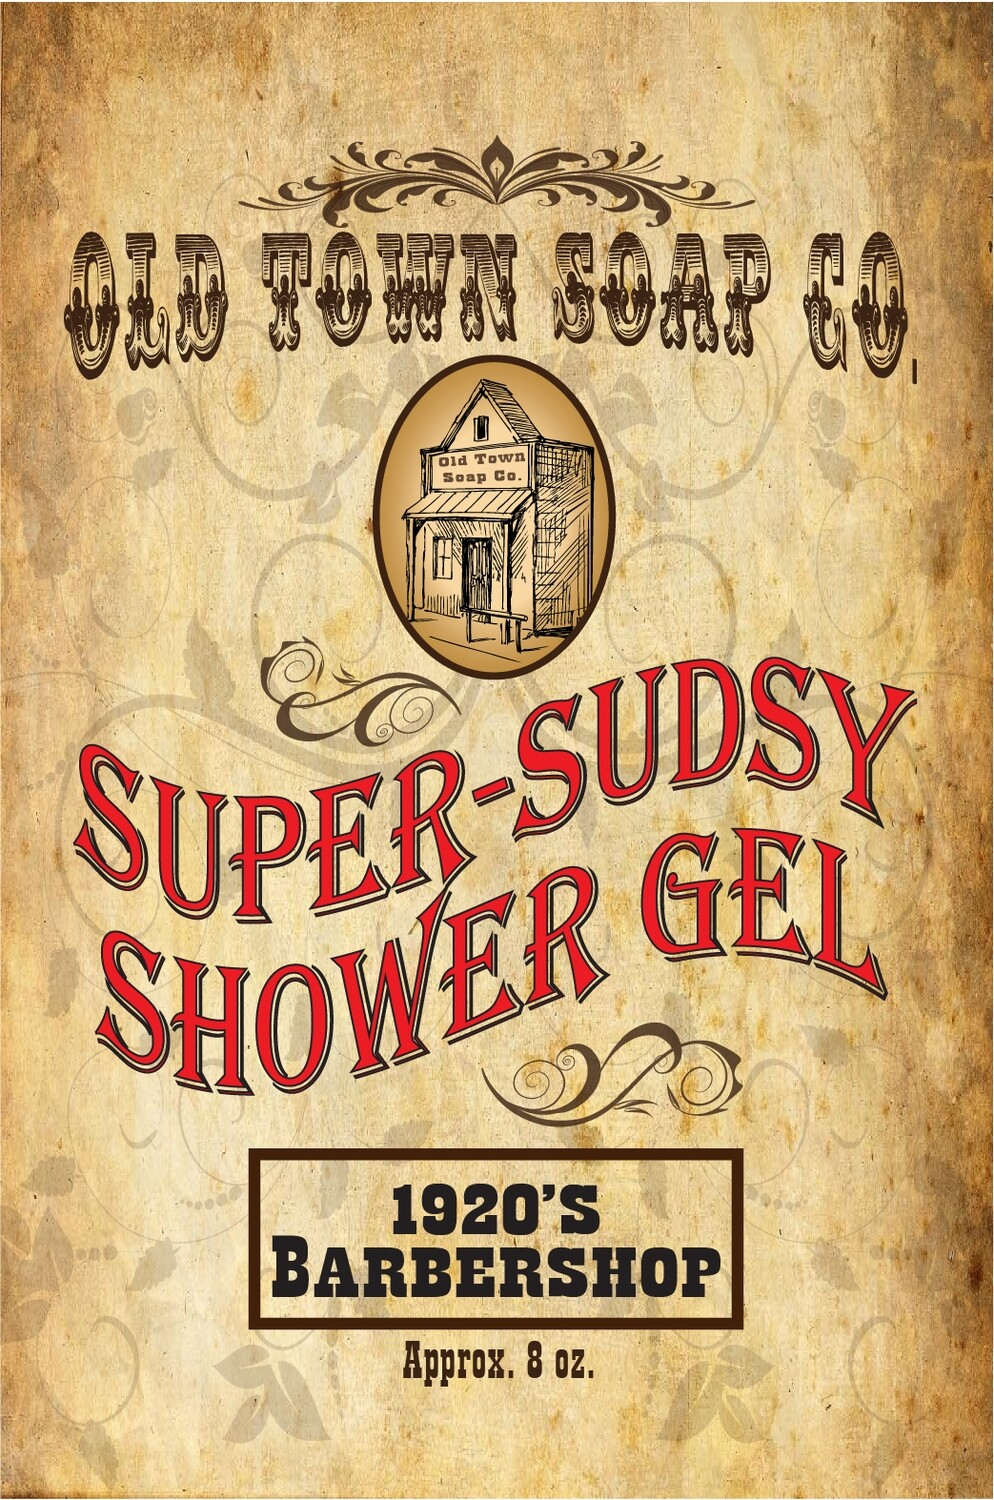 1920's Barbershop -Shower Gel